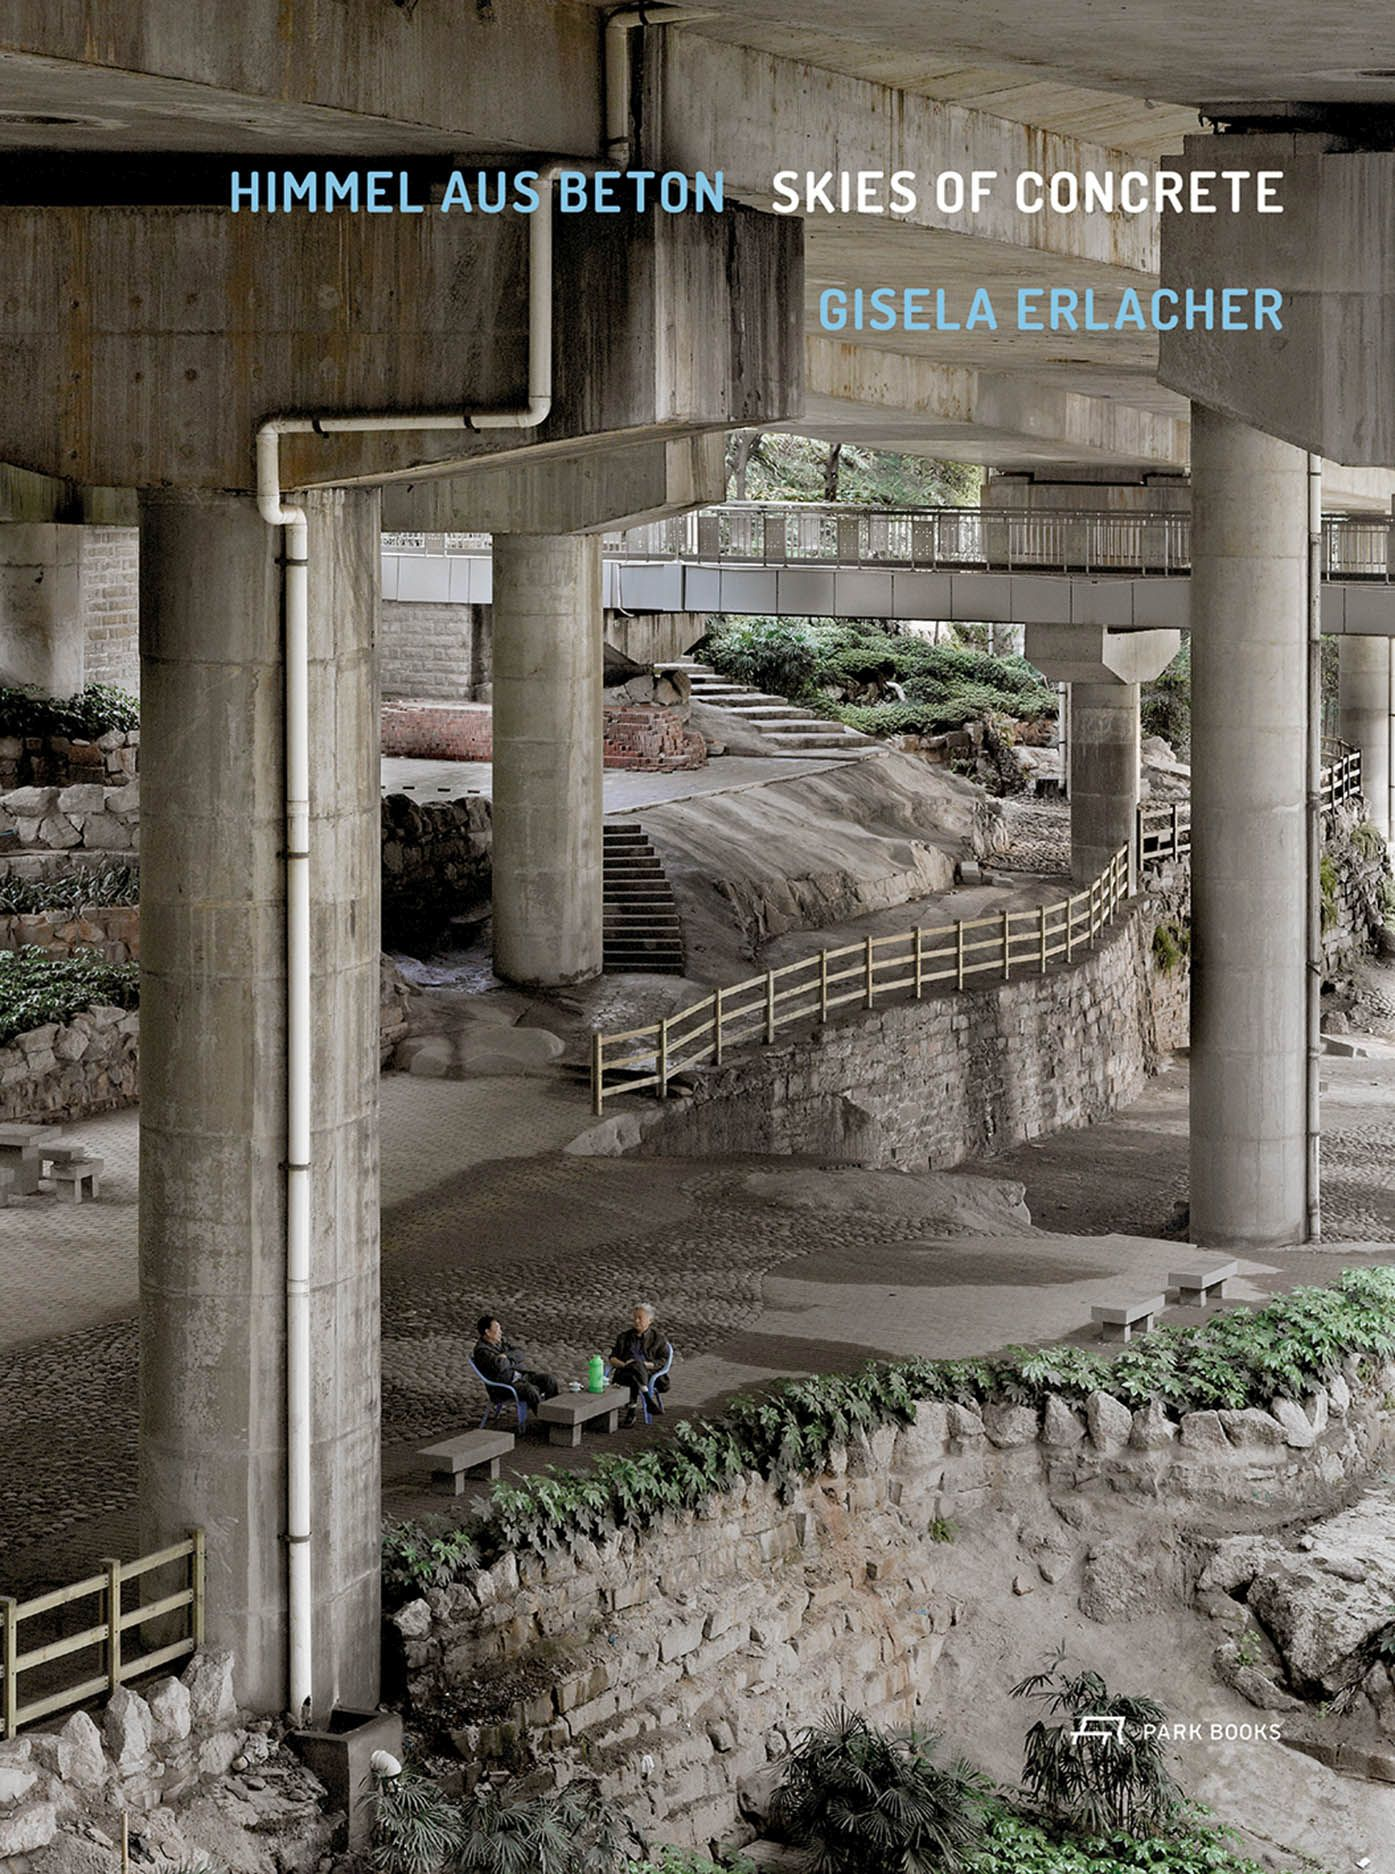 Gisela Erlacher - Skies of Concrete